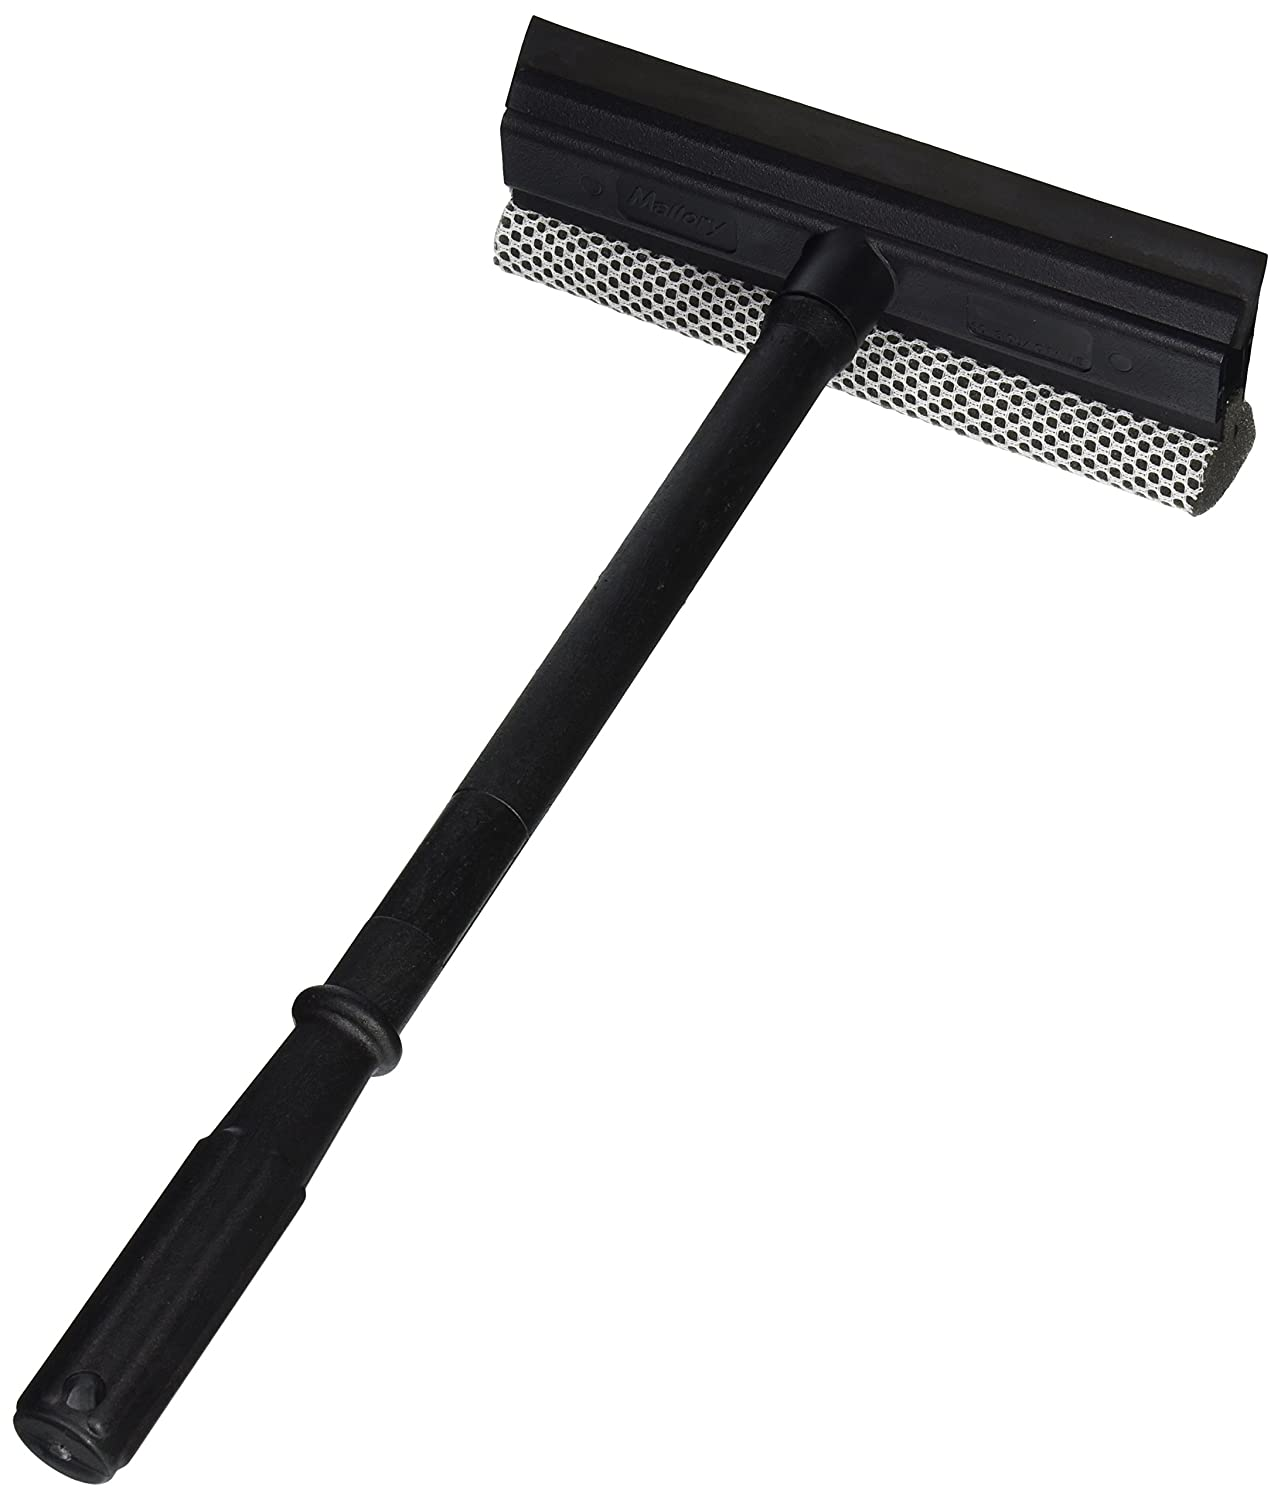 mallory ws1524a 8inch bug sponge squeegee black u2013 doublesided advantage